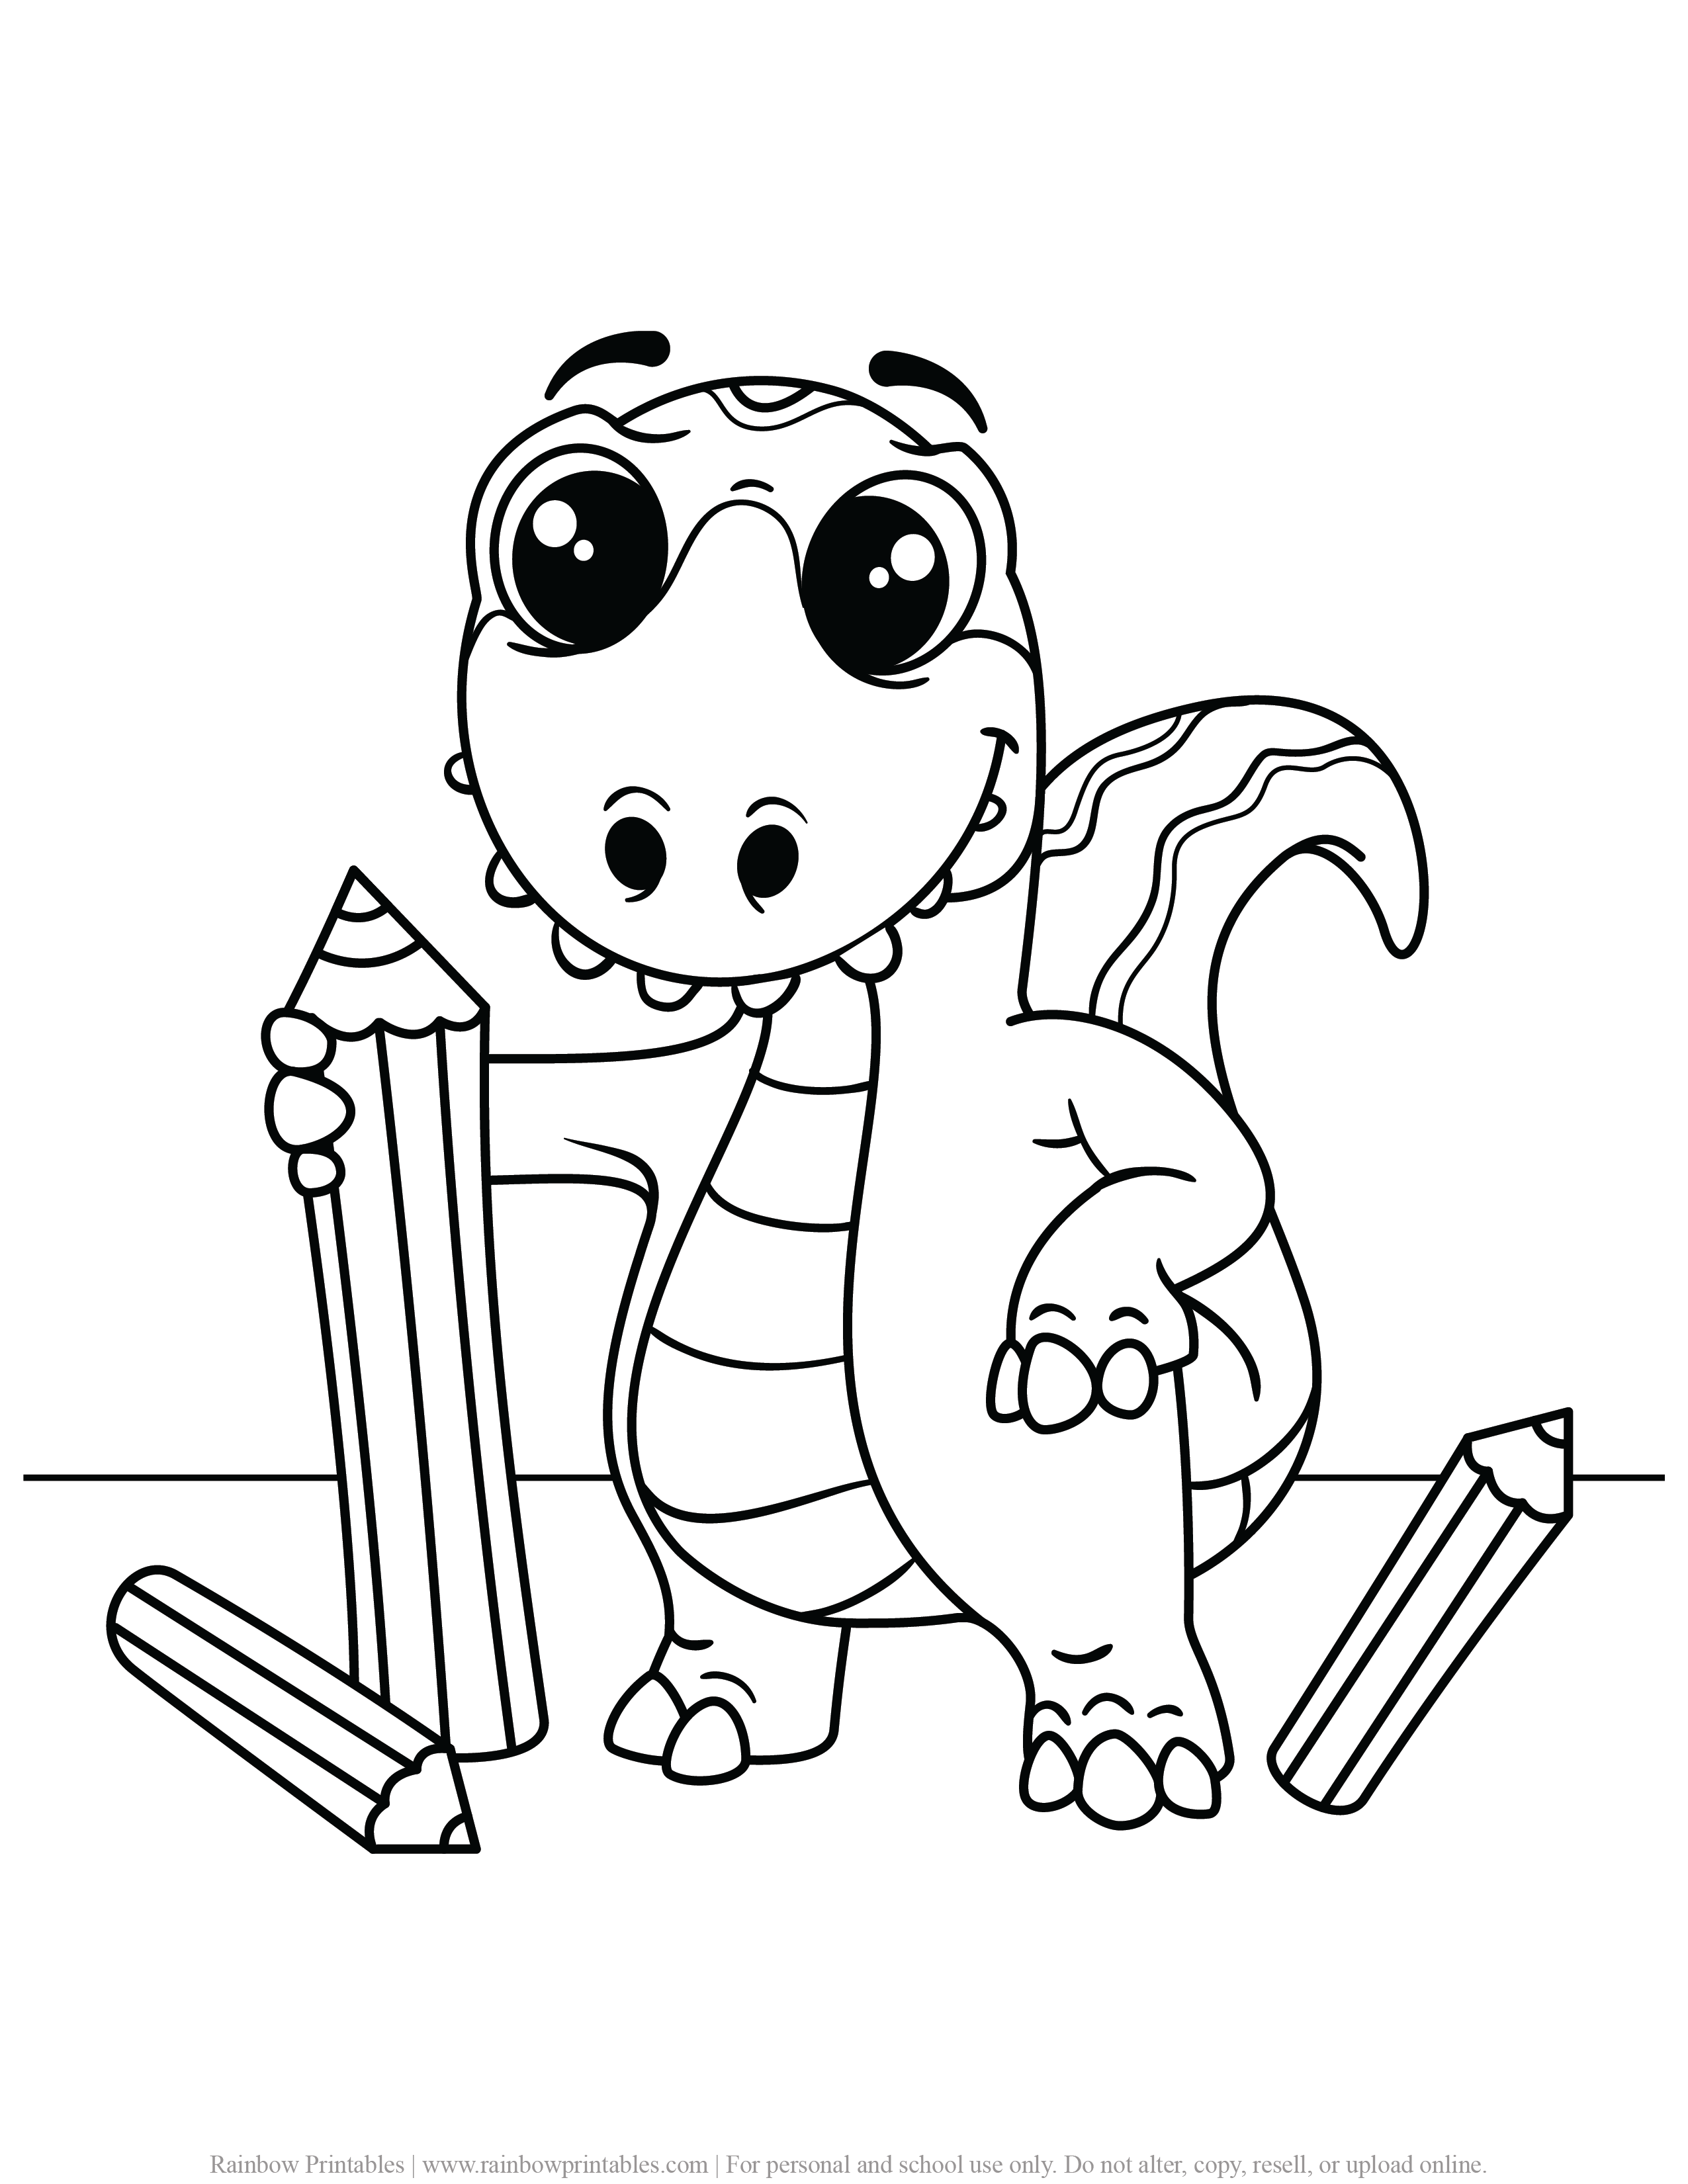 FREE DINOSAUR COLORING PAGES ACTIVITY FOR KIDS AND BOYS DINO DRAGON PRINTABLE-10